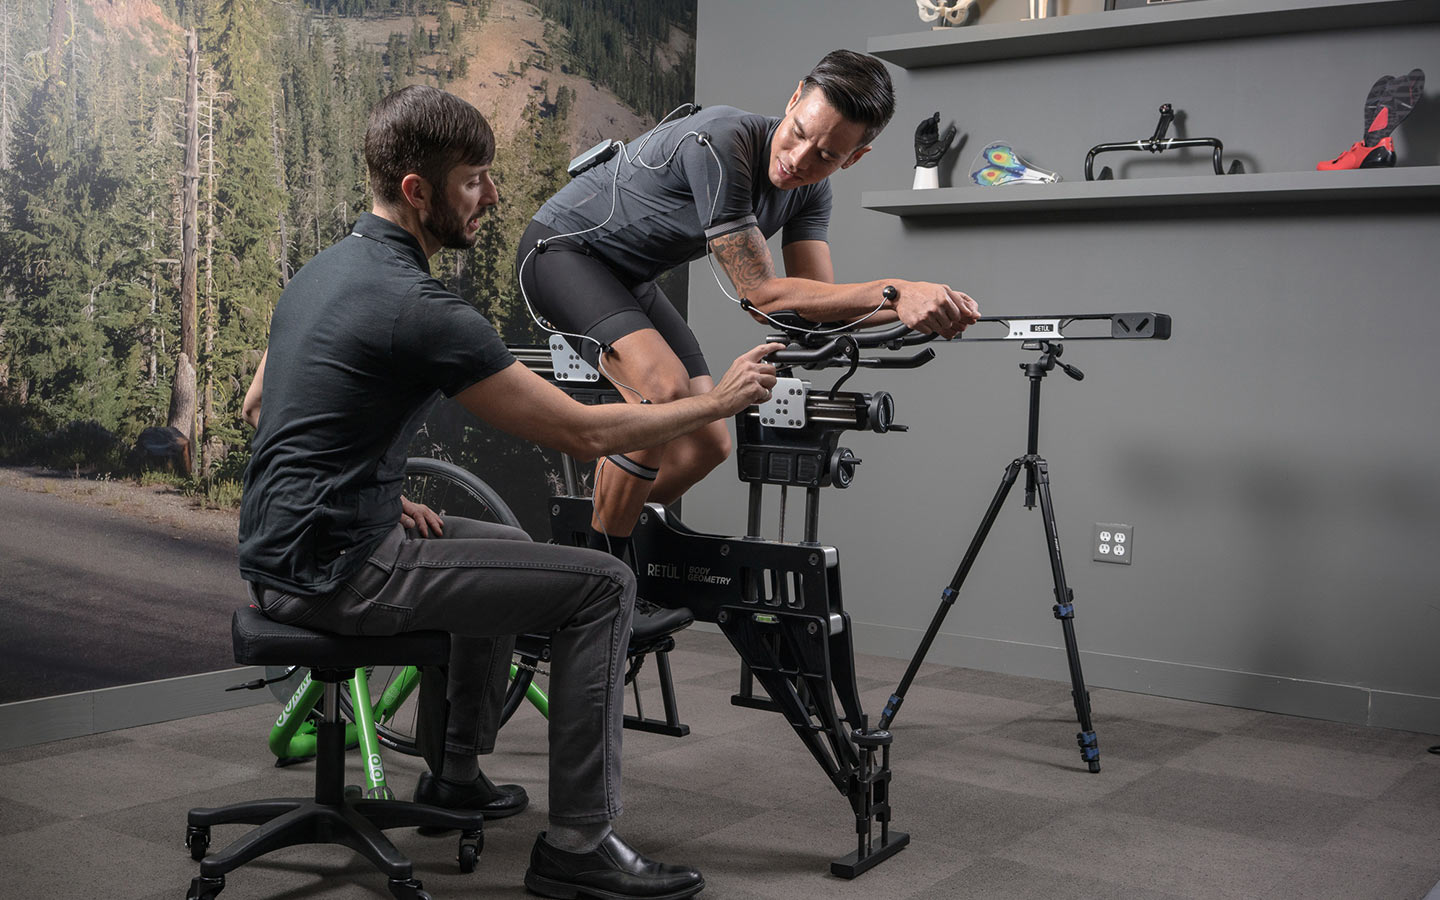 Person getting a bike fit